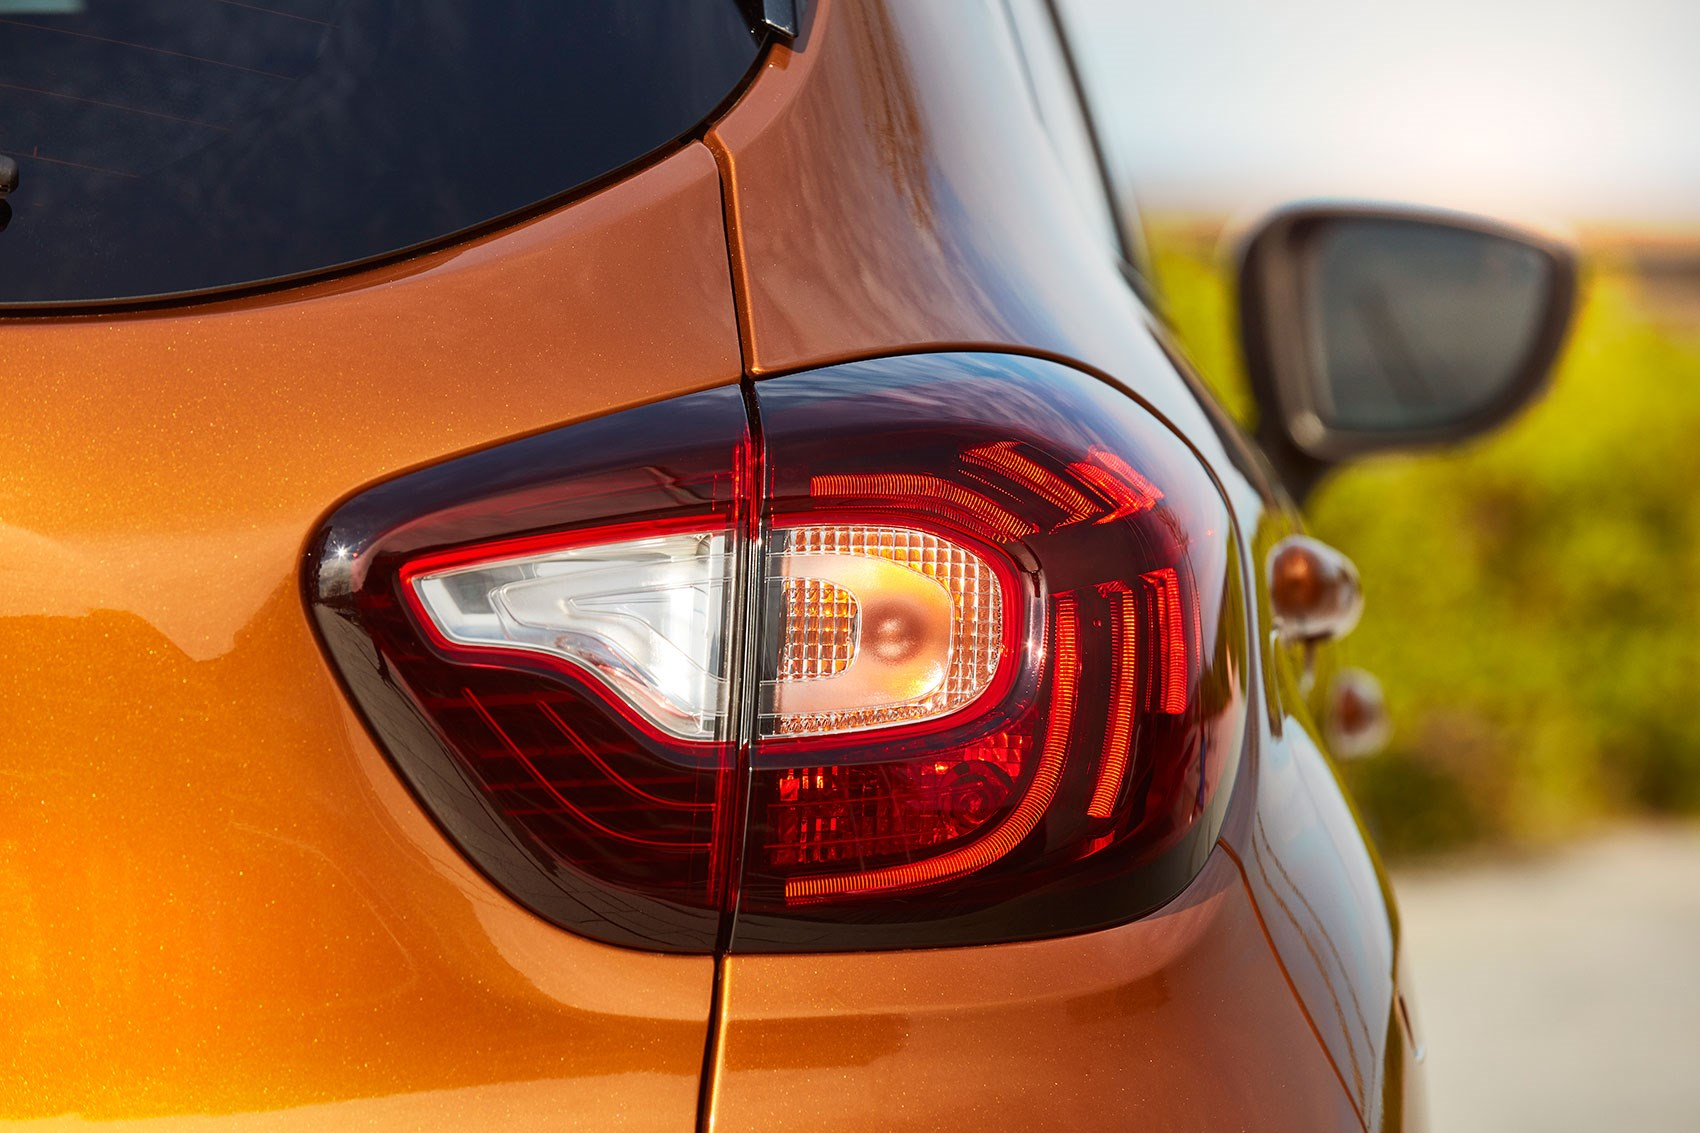 Rear end of facelifted Renault Captur car